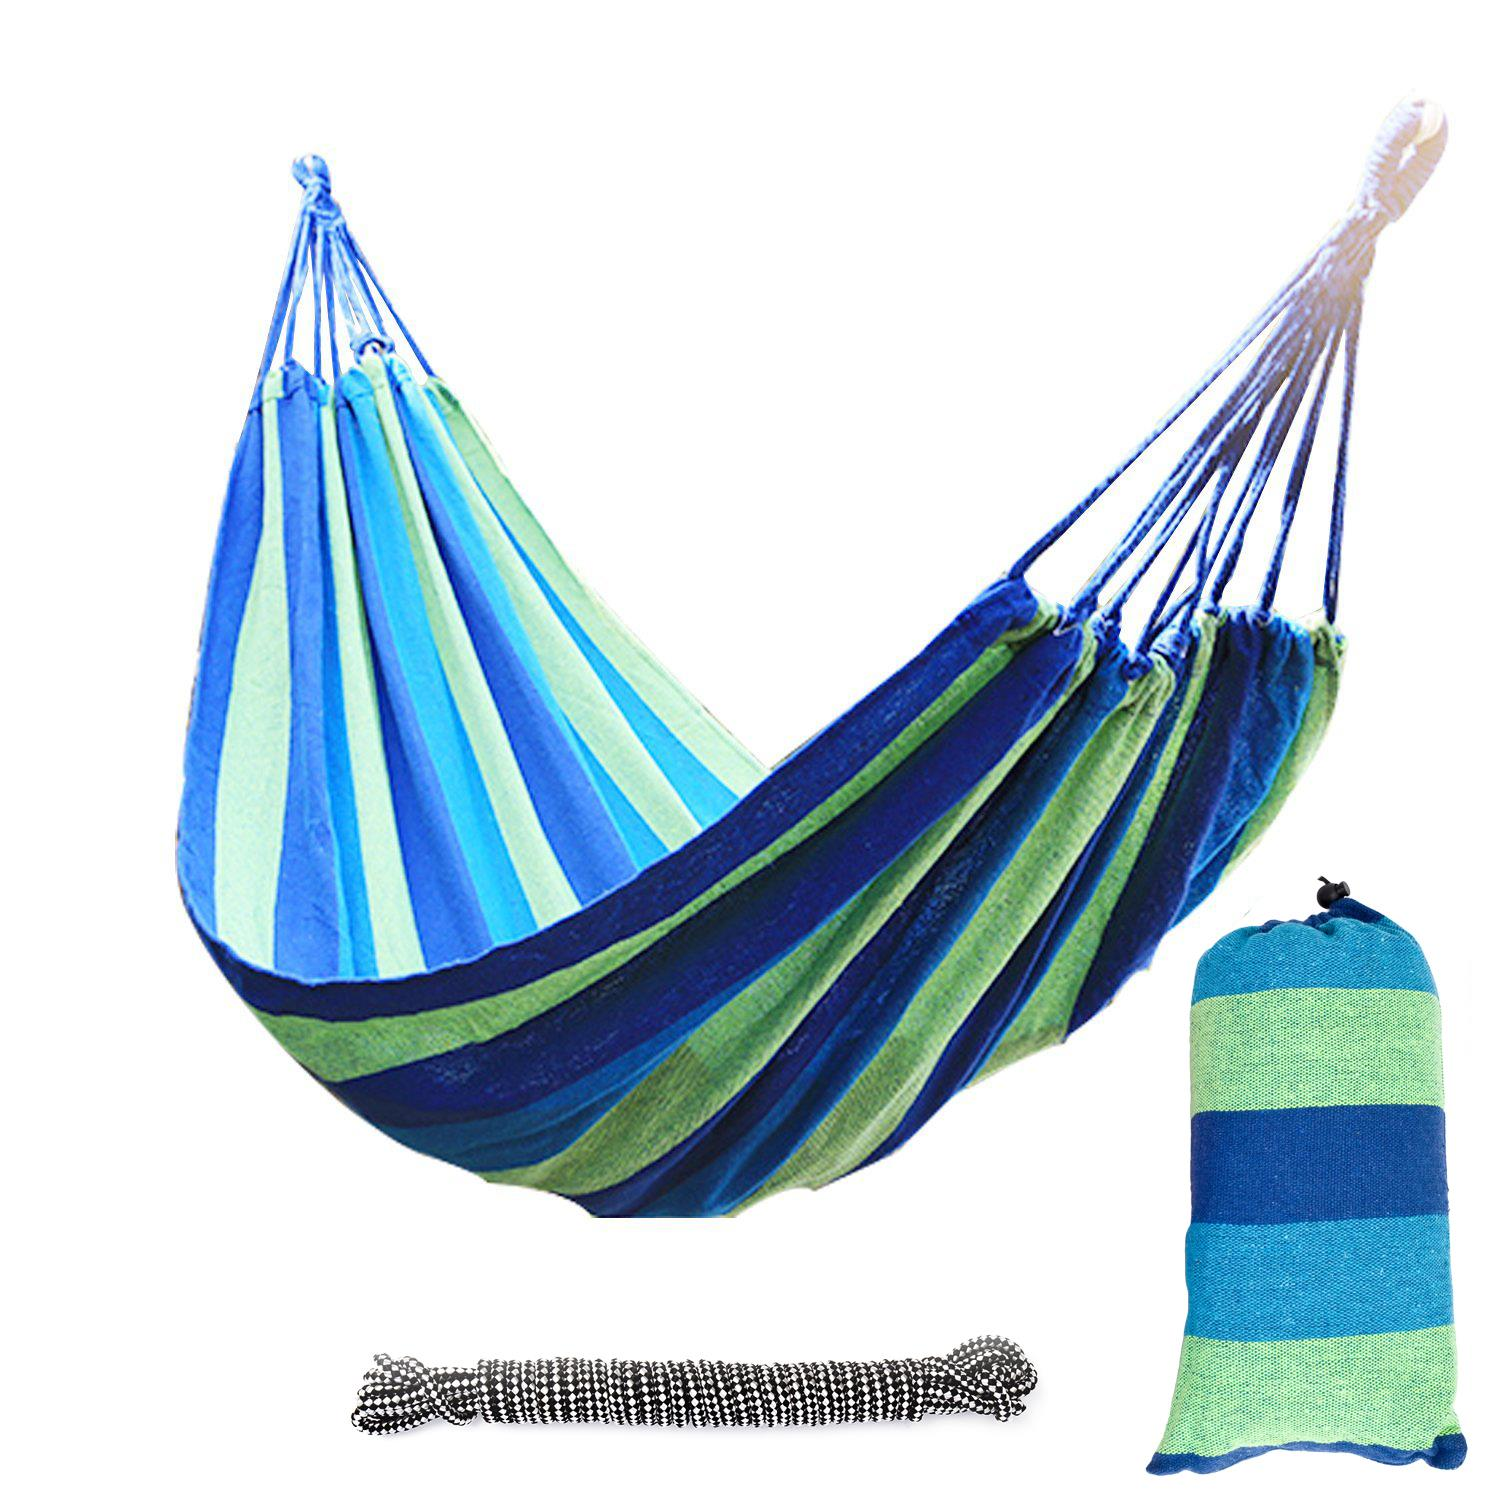 Ktaxon Outdoor Cotton 2-Person Double Hammock Bed with Carrying Bag